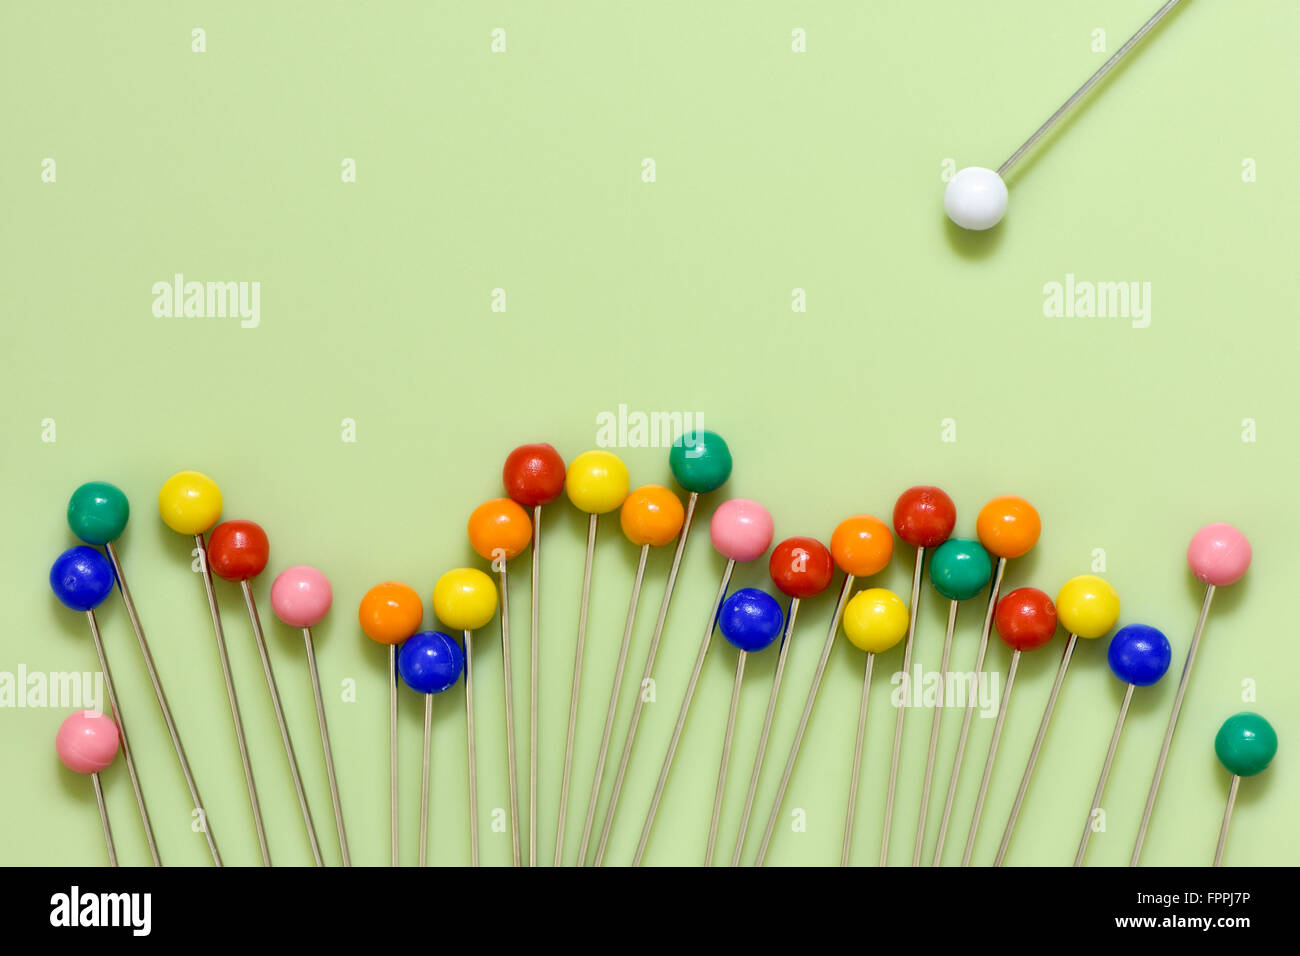 Colourful berry pins on green background with odd white one by itself with concept of odd one out - Stock Image